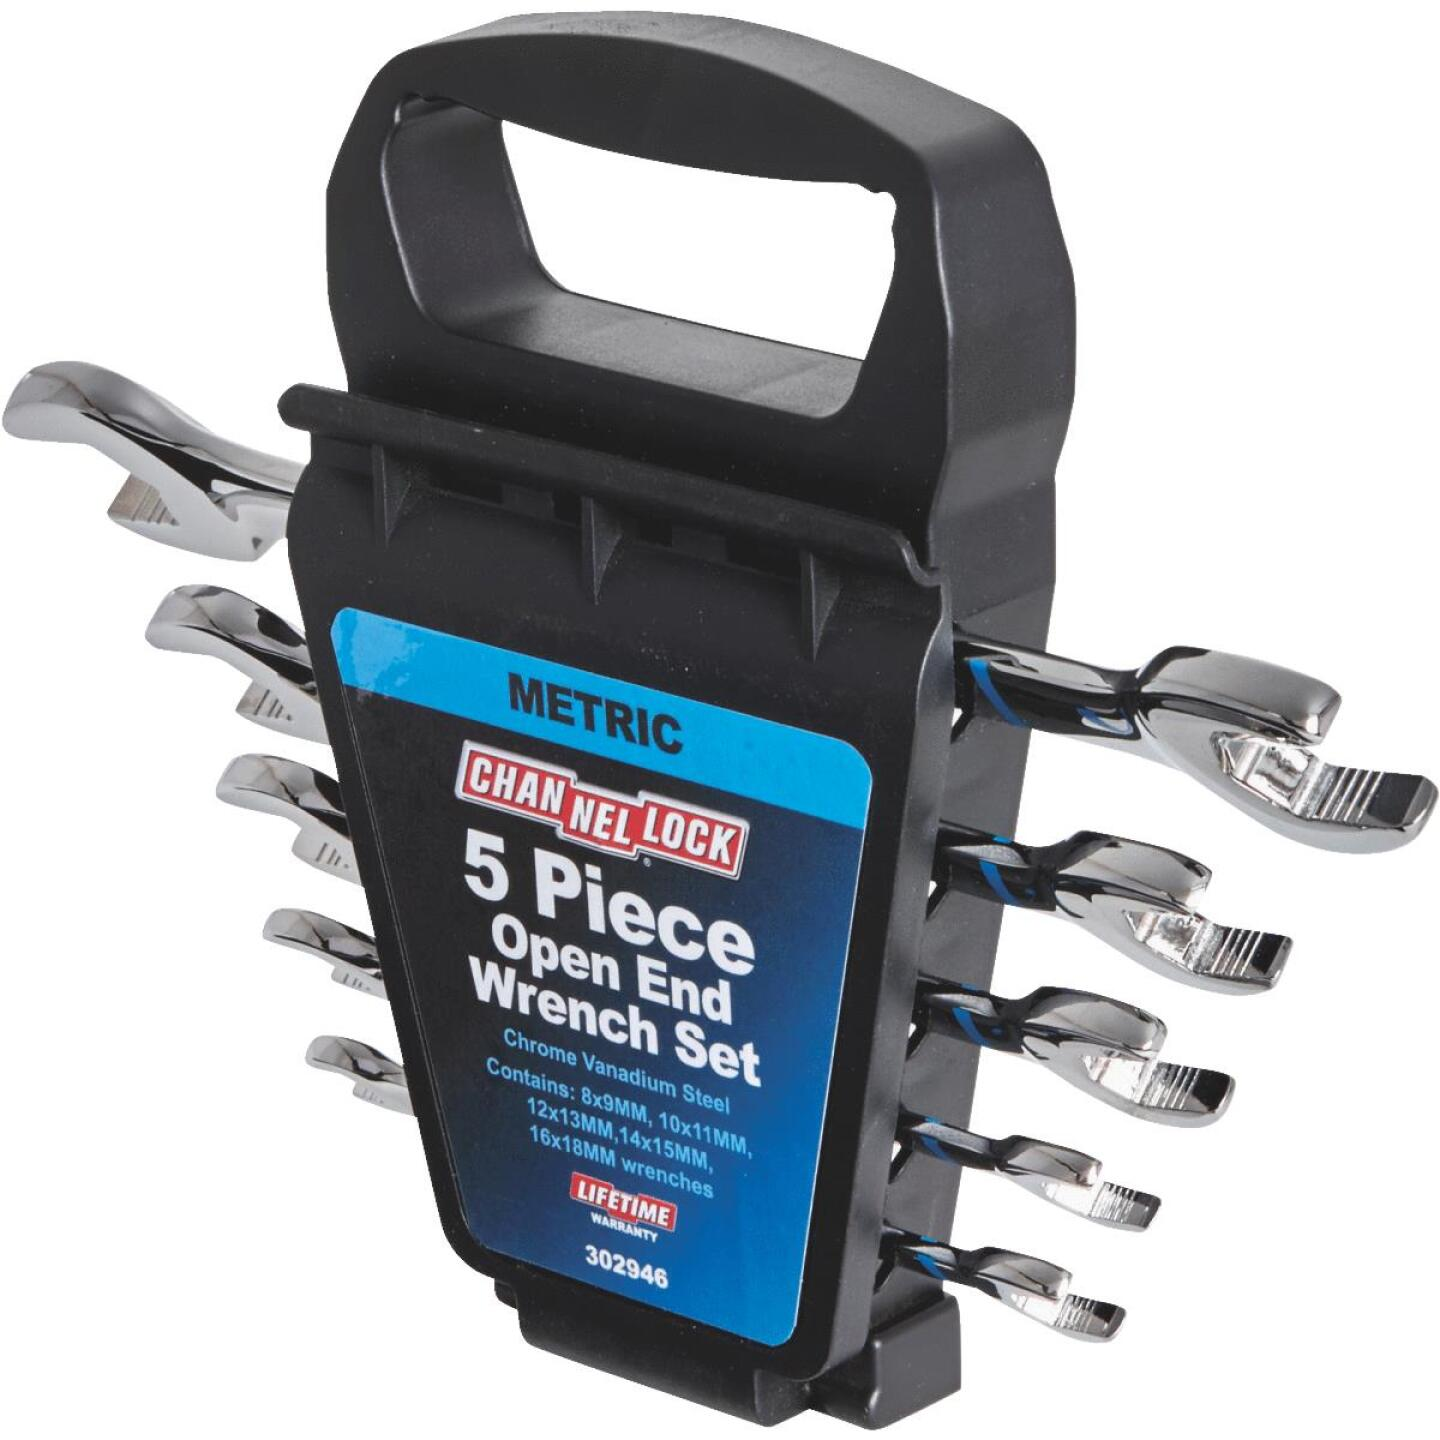 Channellock Metric Open End Wrench Set (5-Piece) Image 3